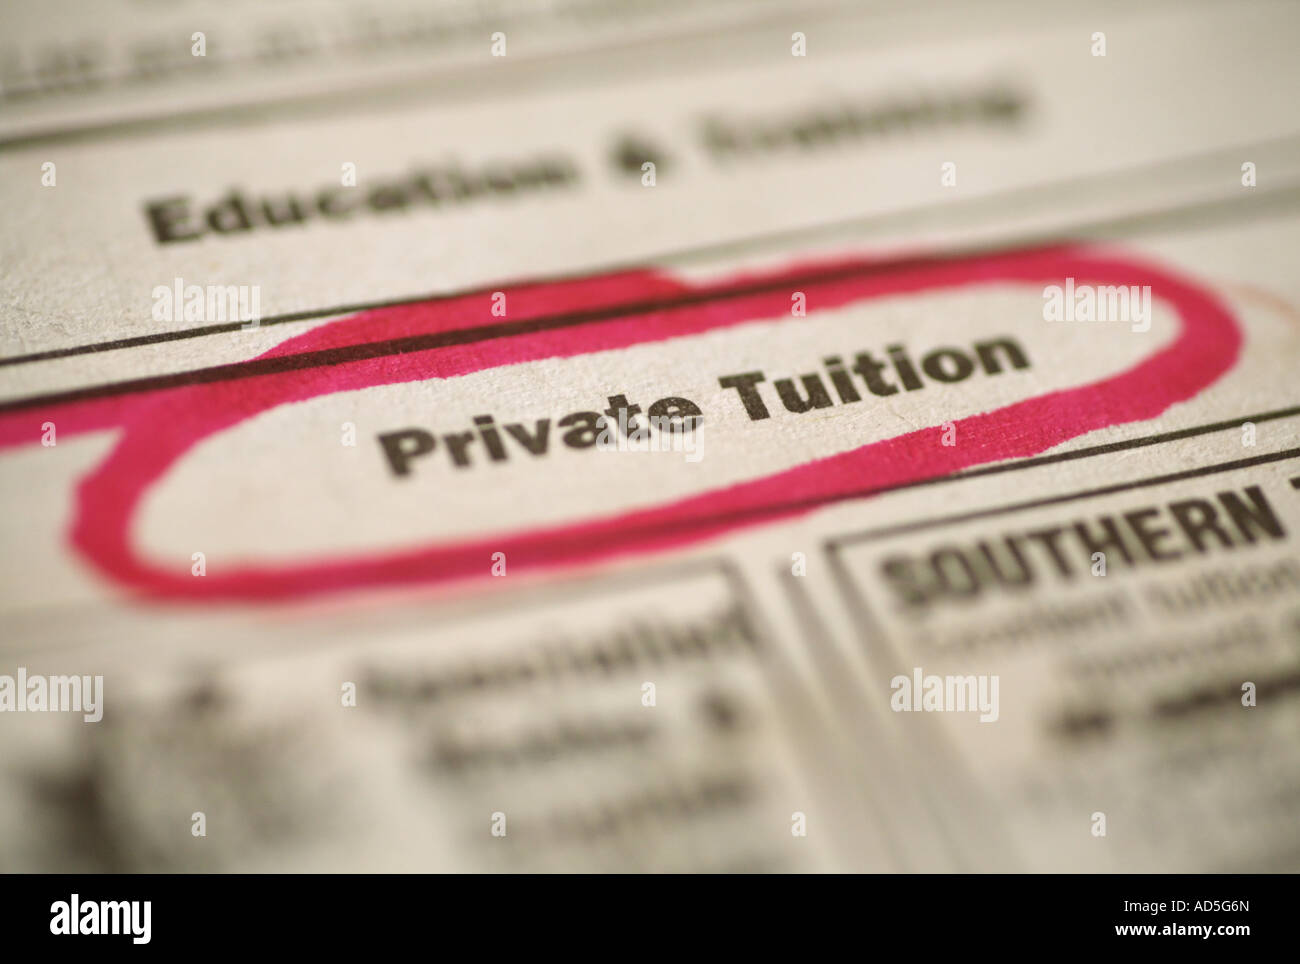 newspaper advert for private tuition - Stock Image